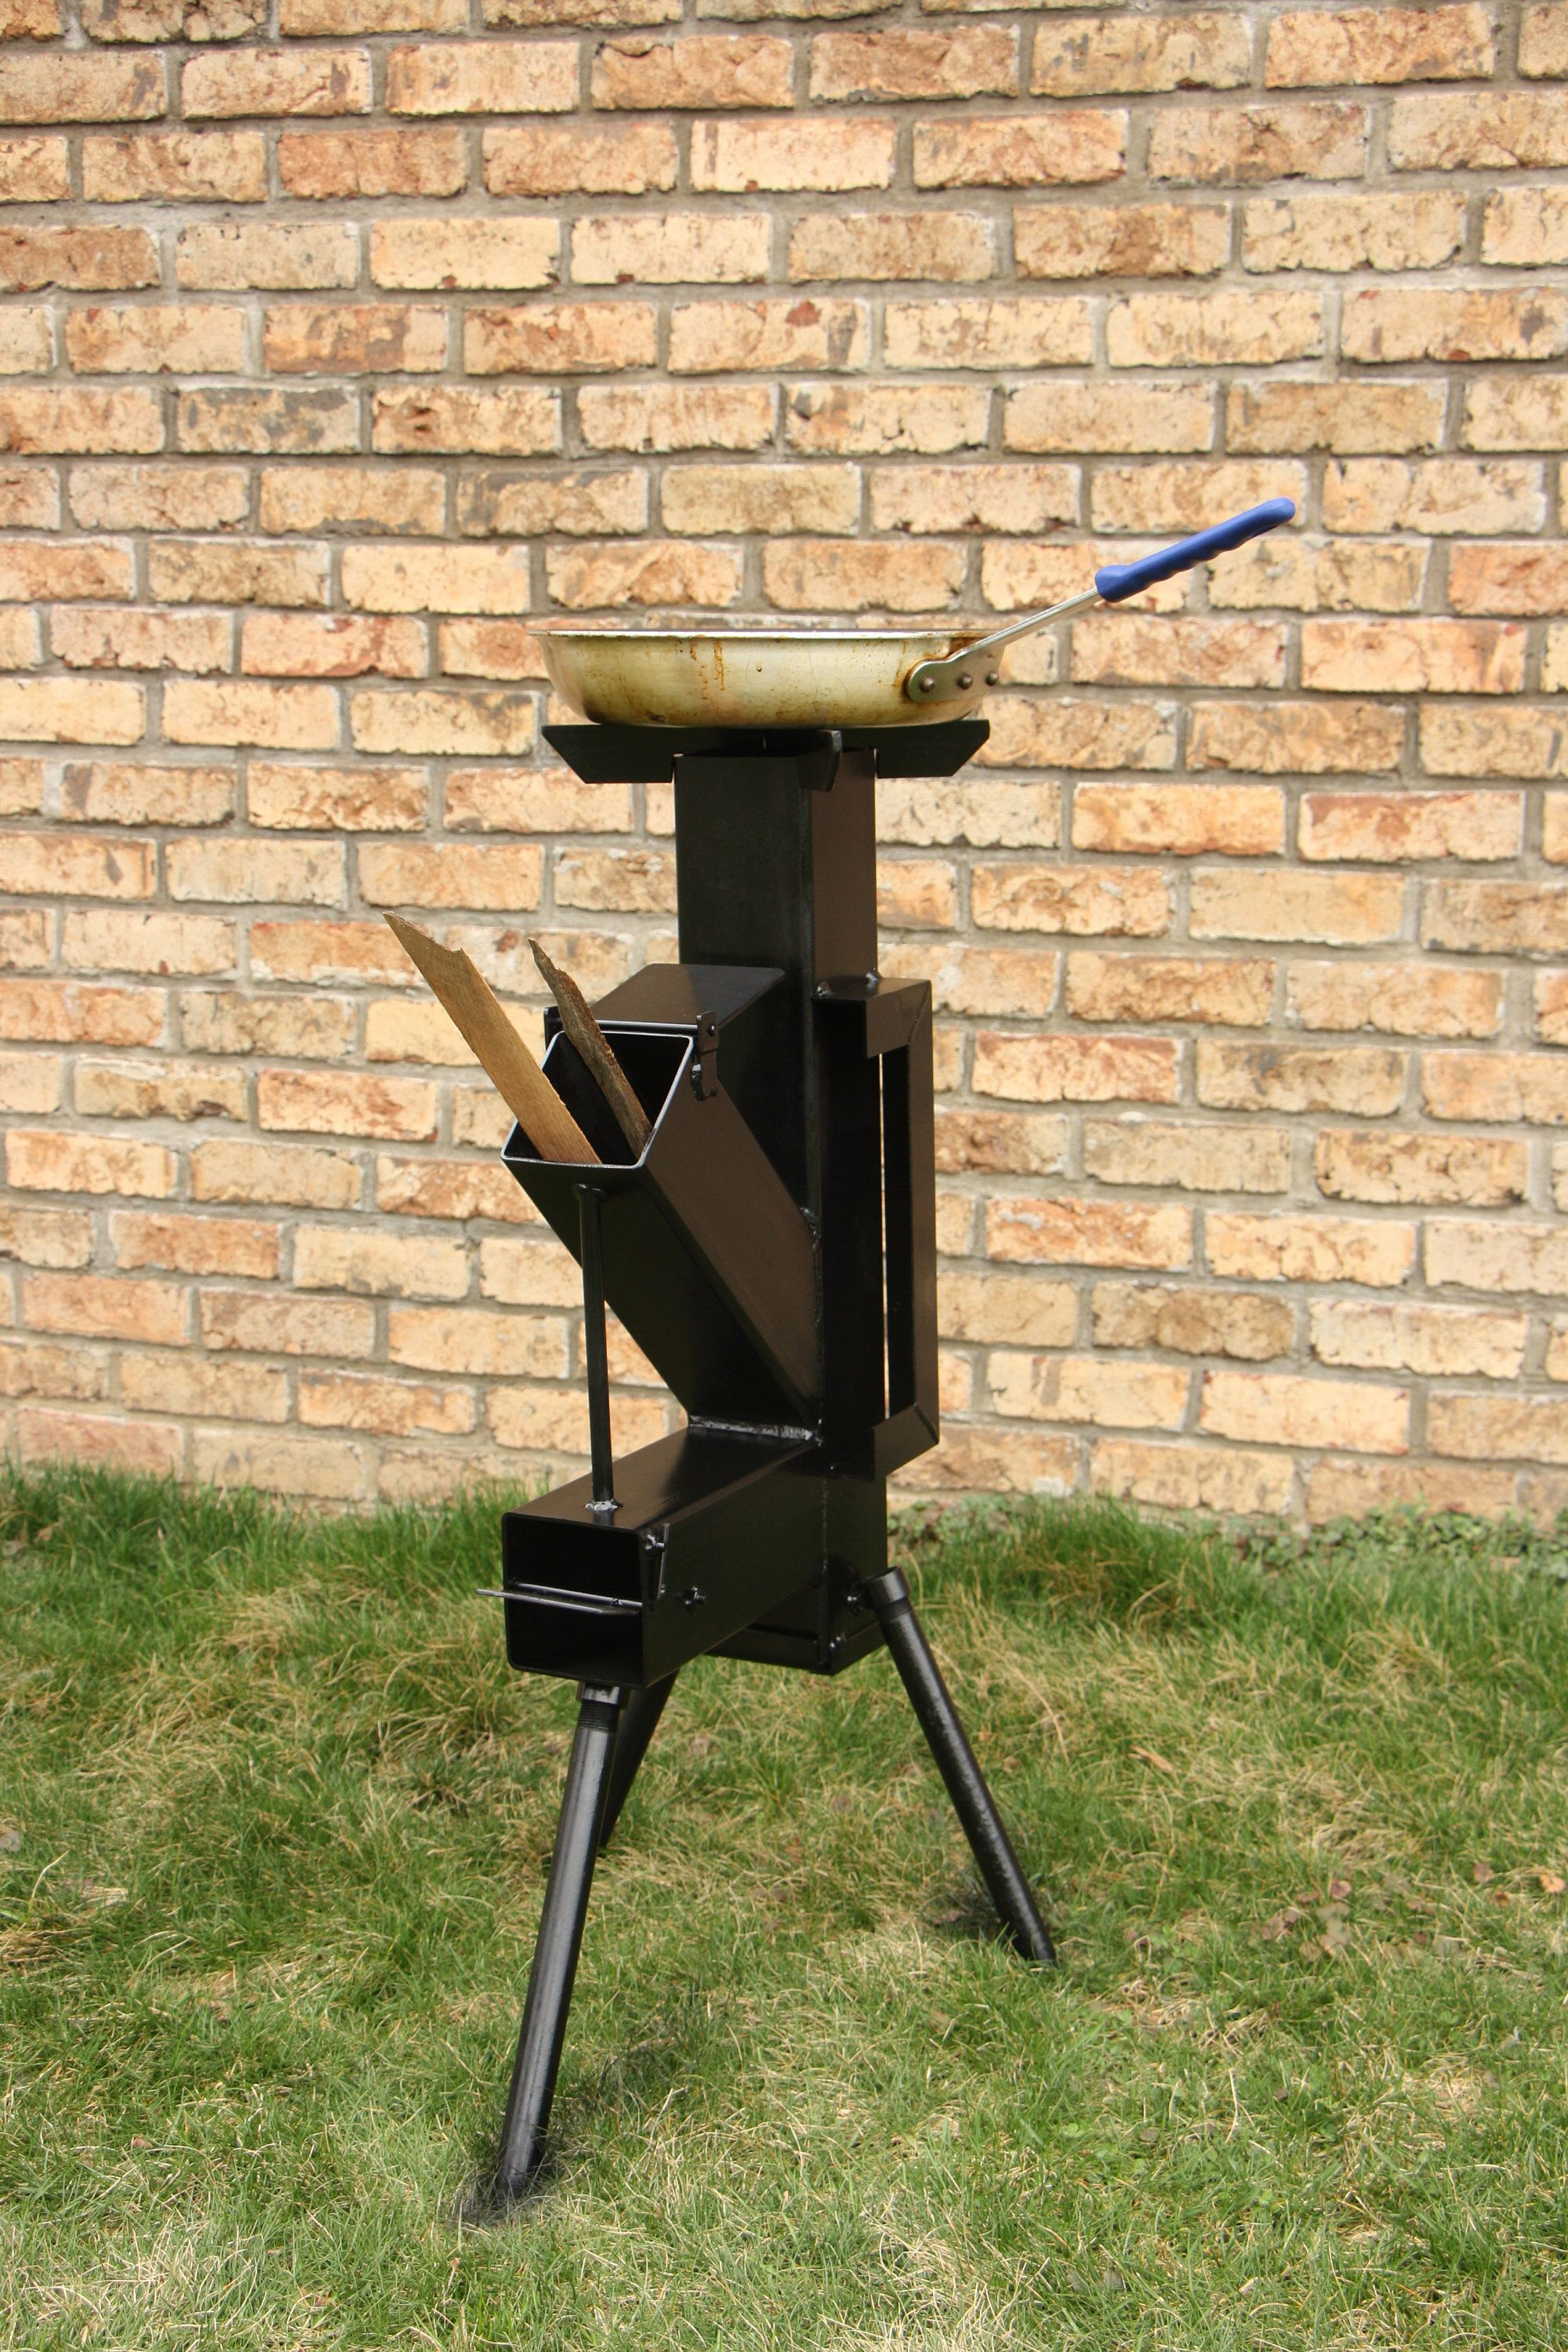 Rocket Stove, Camping Stove, Survival wood stove 24912 in